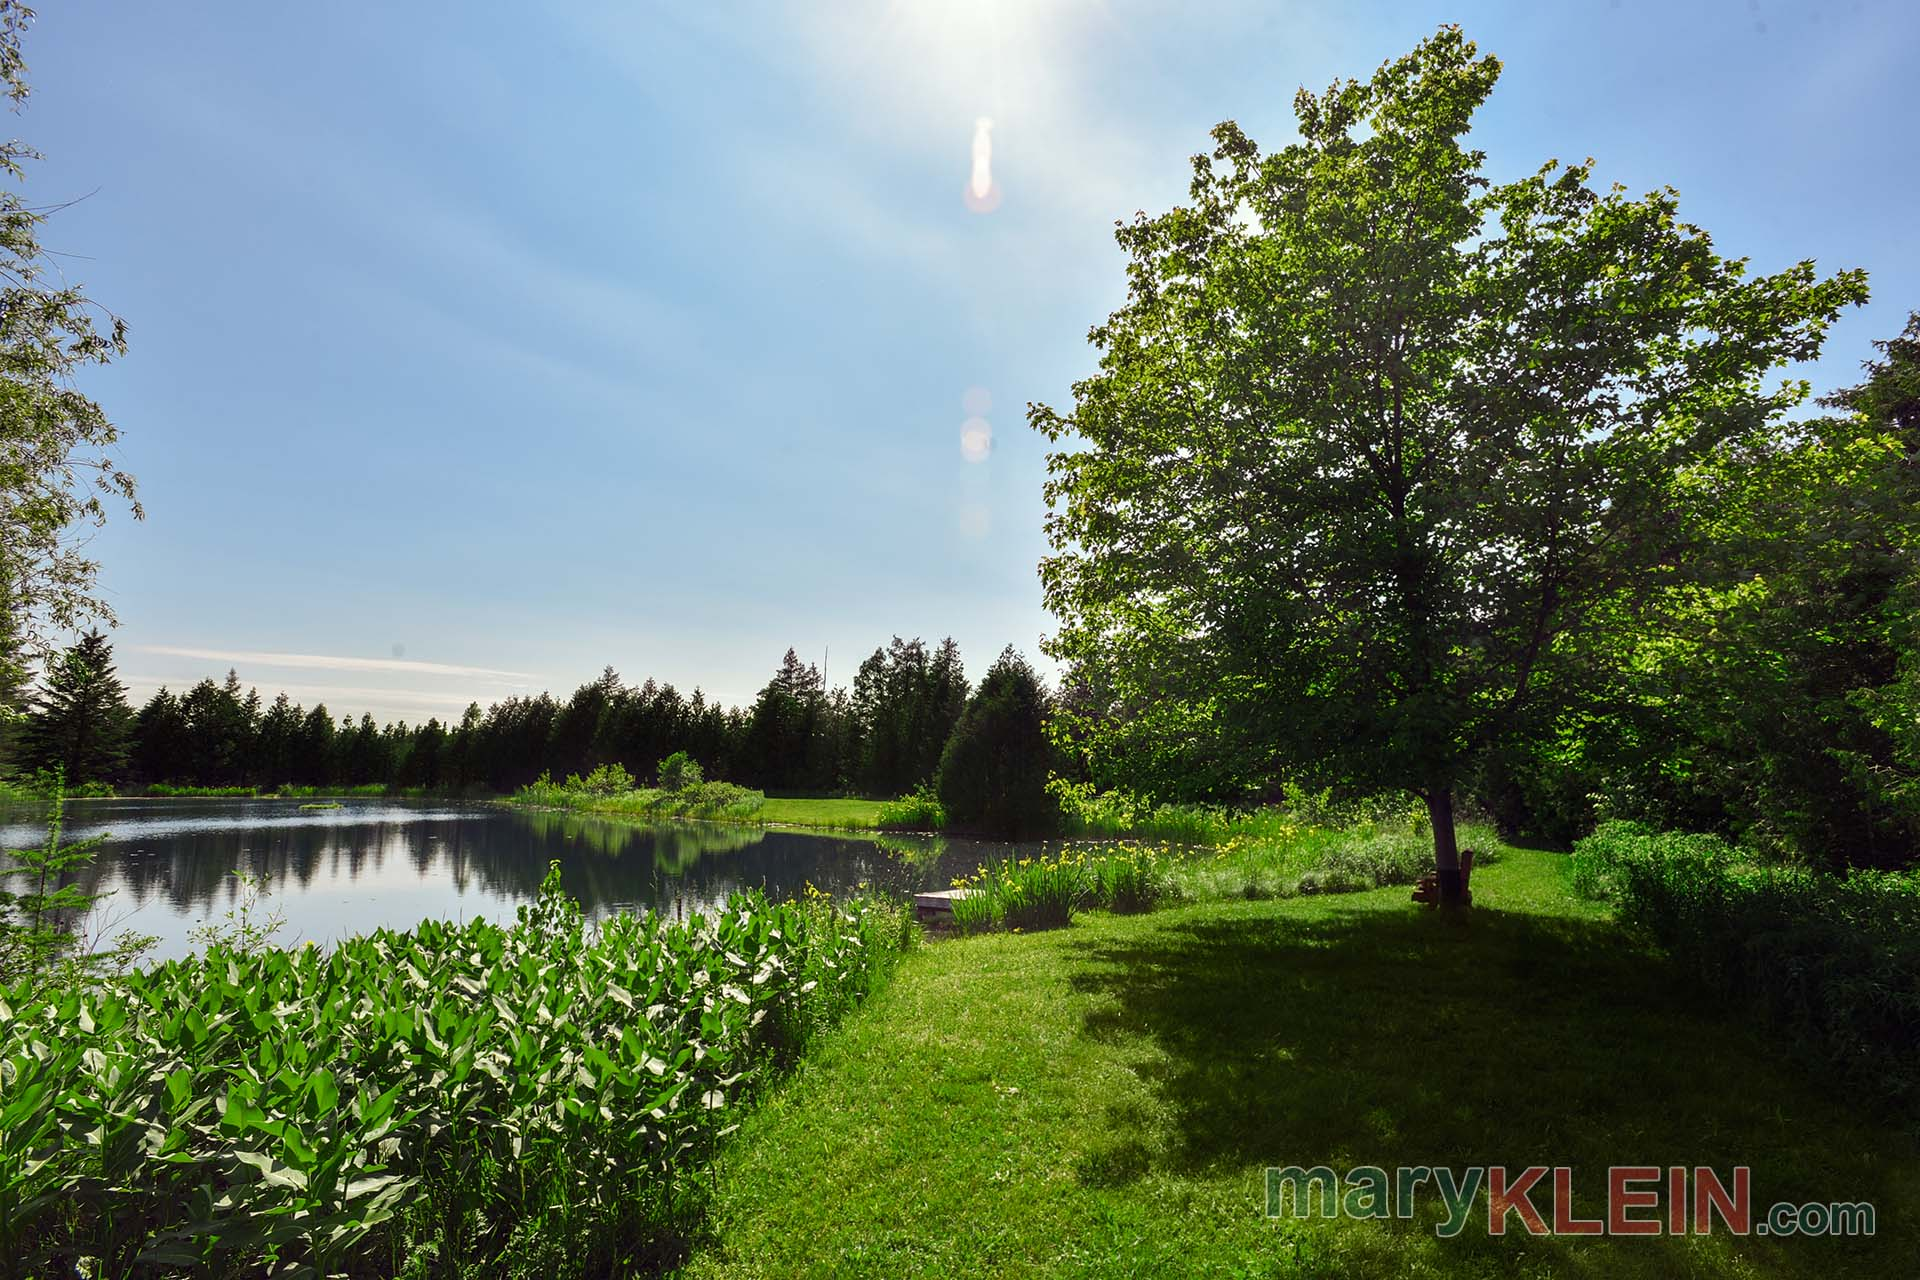 Milkweed, Pond, Maple Tree, For Sale